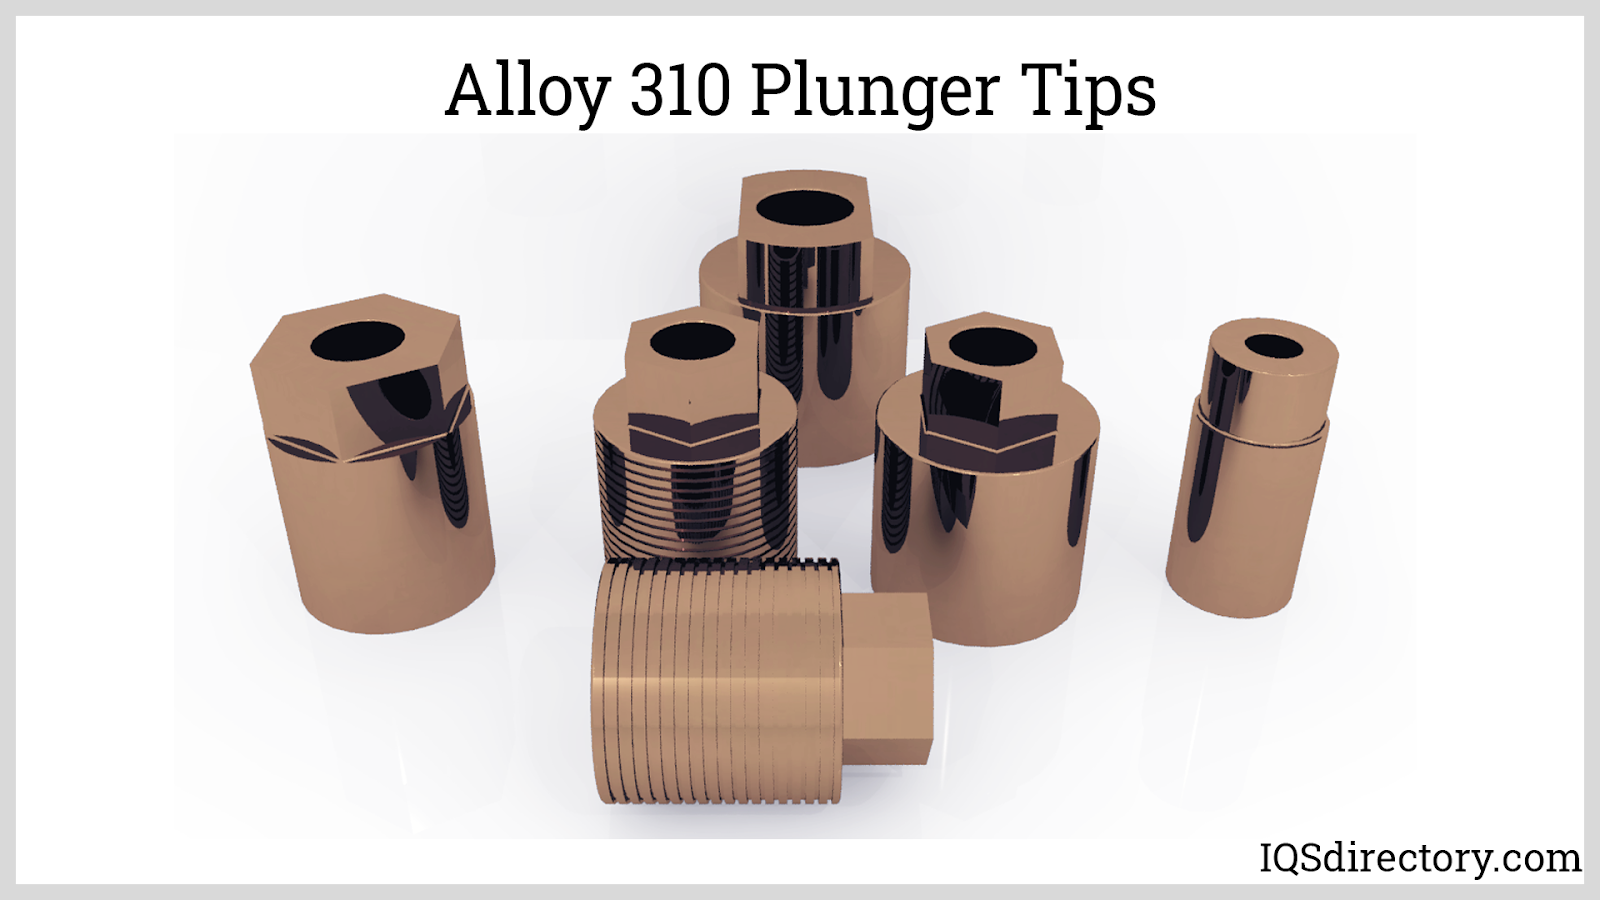 Alloy 310 Plunger Tips